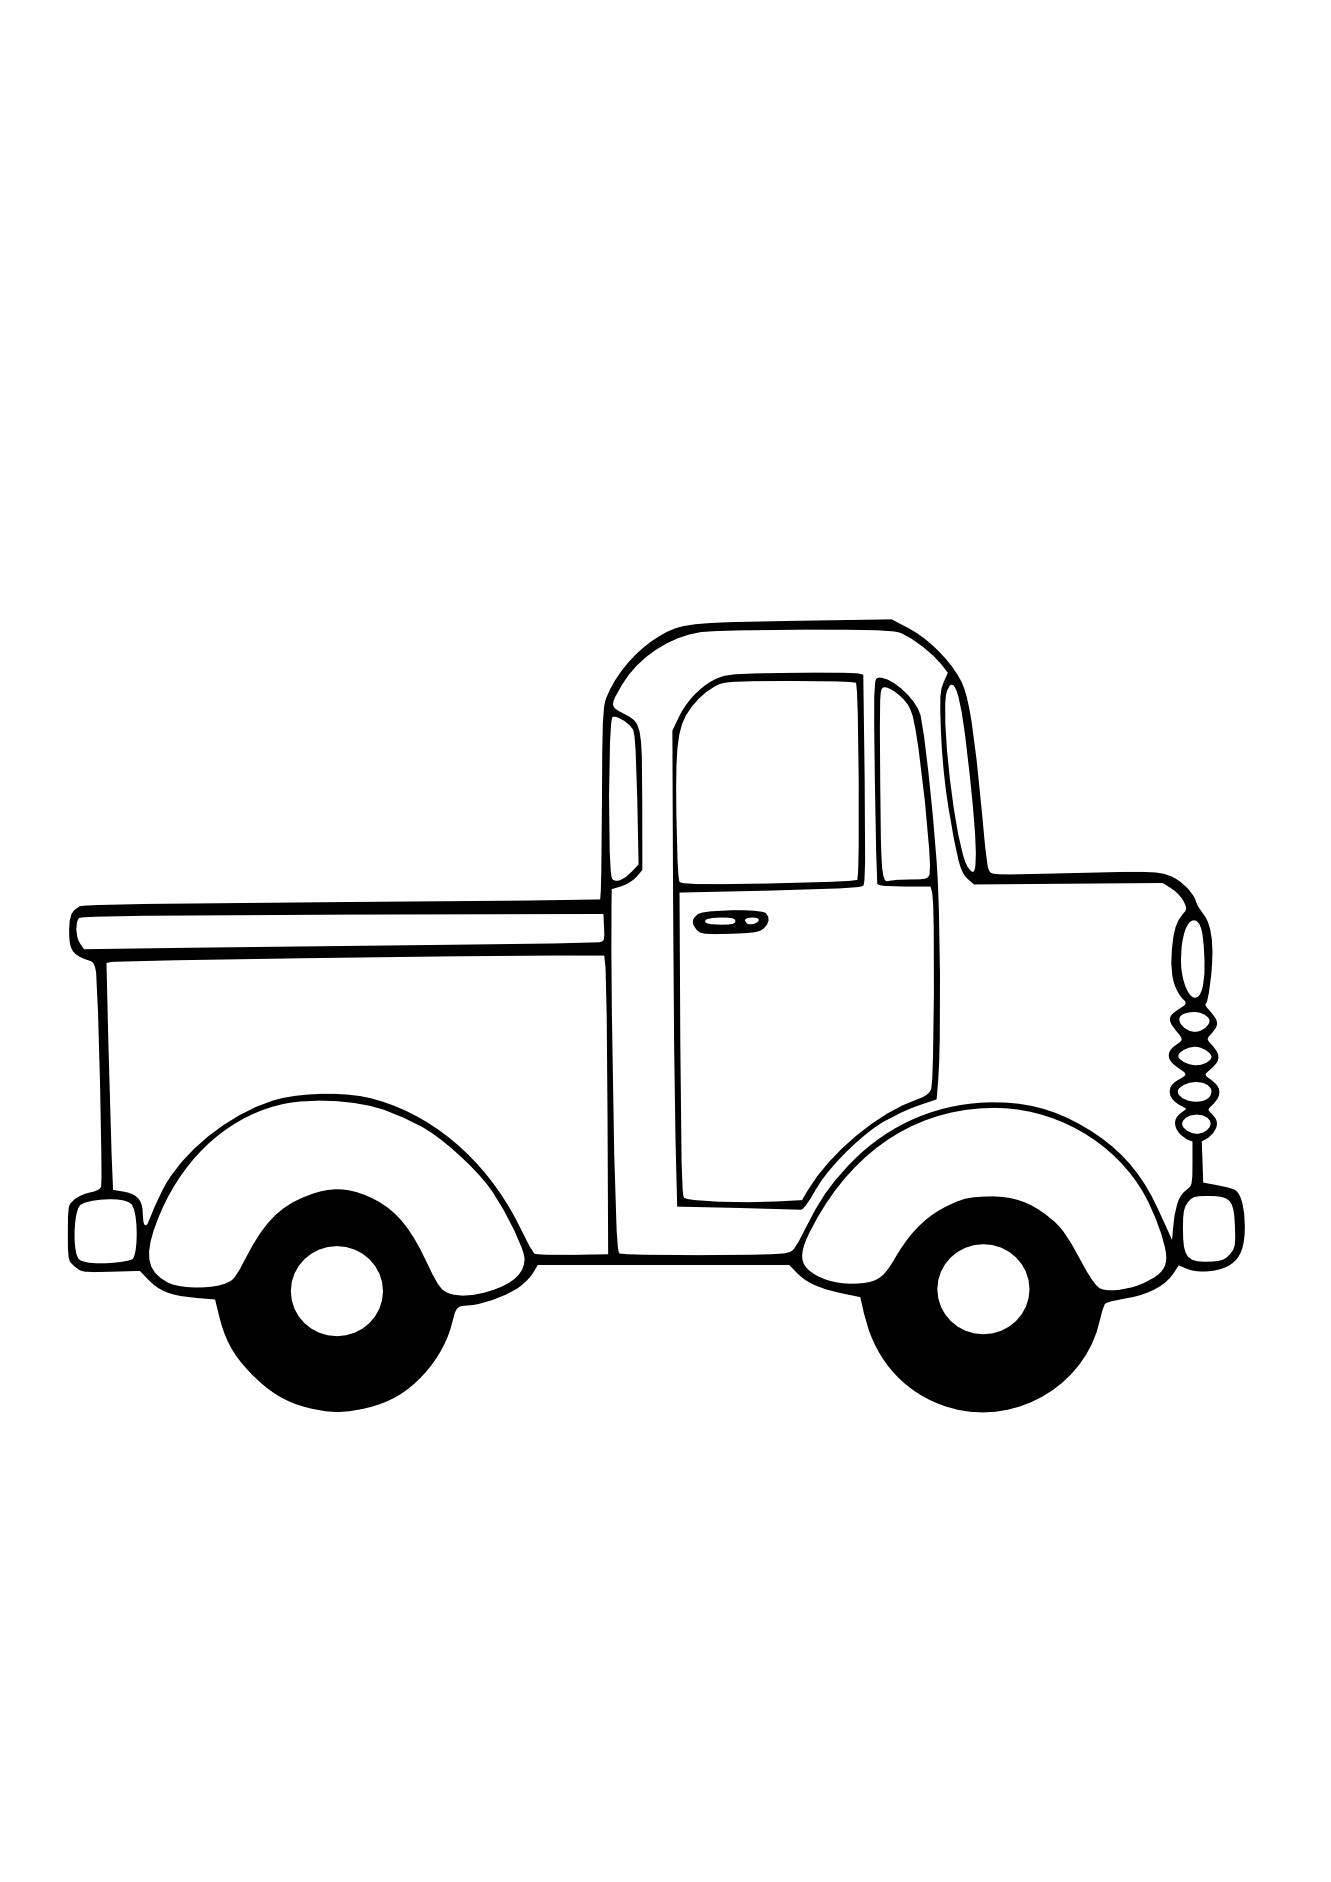 Line Art Truck : Truck black white line art christmas xmas toy scalable